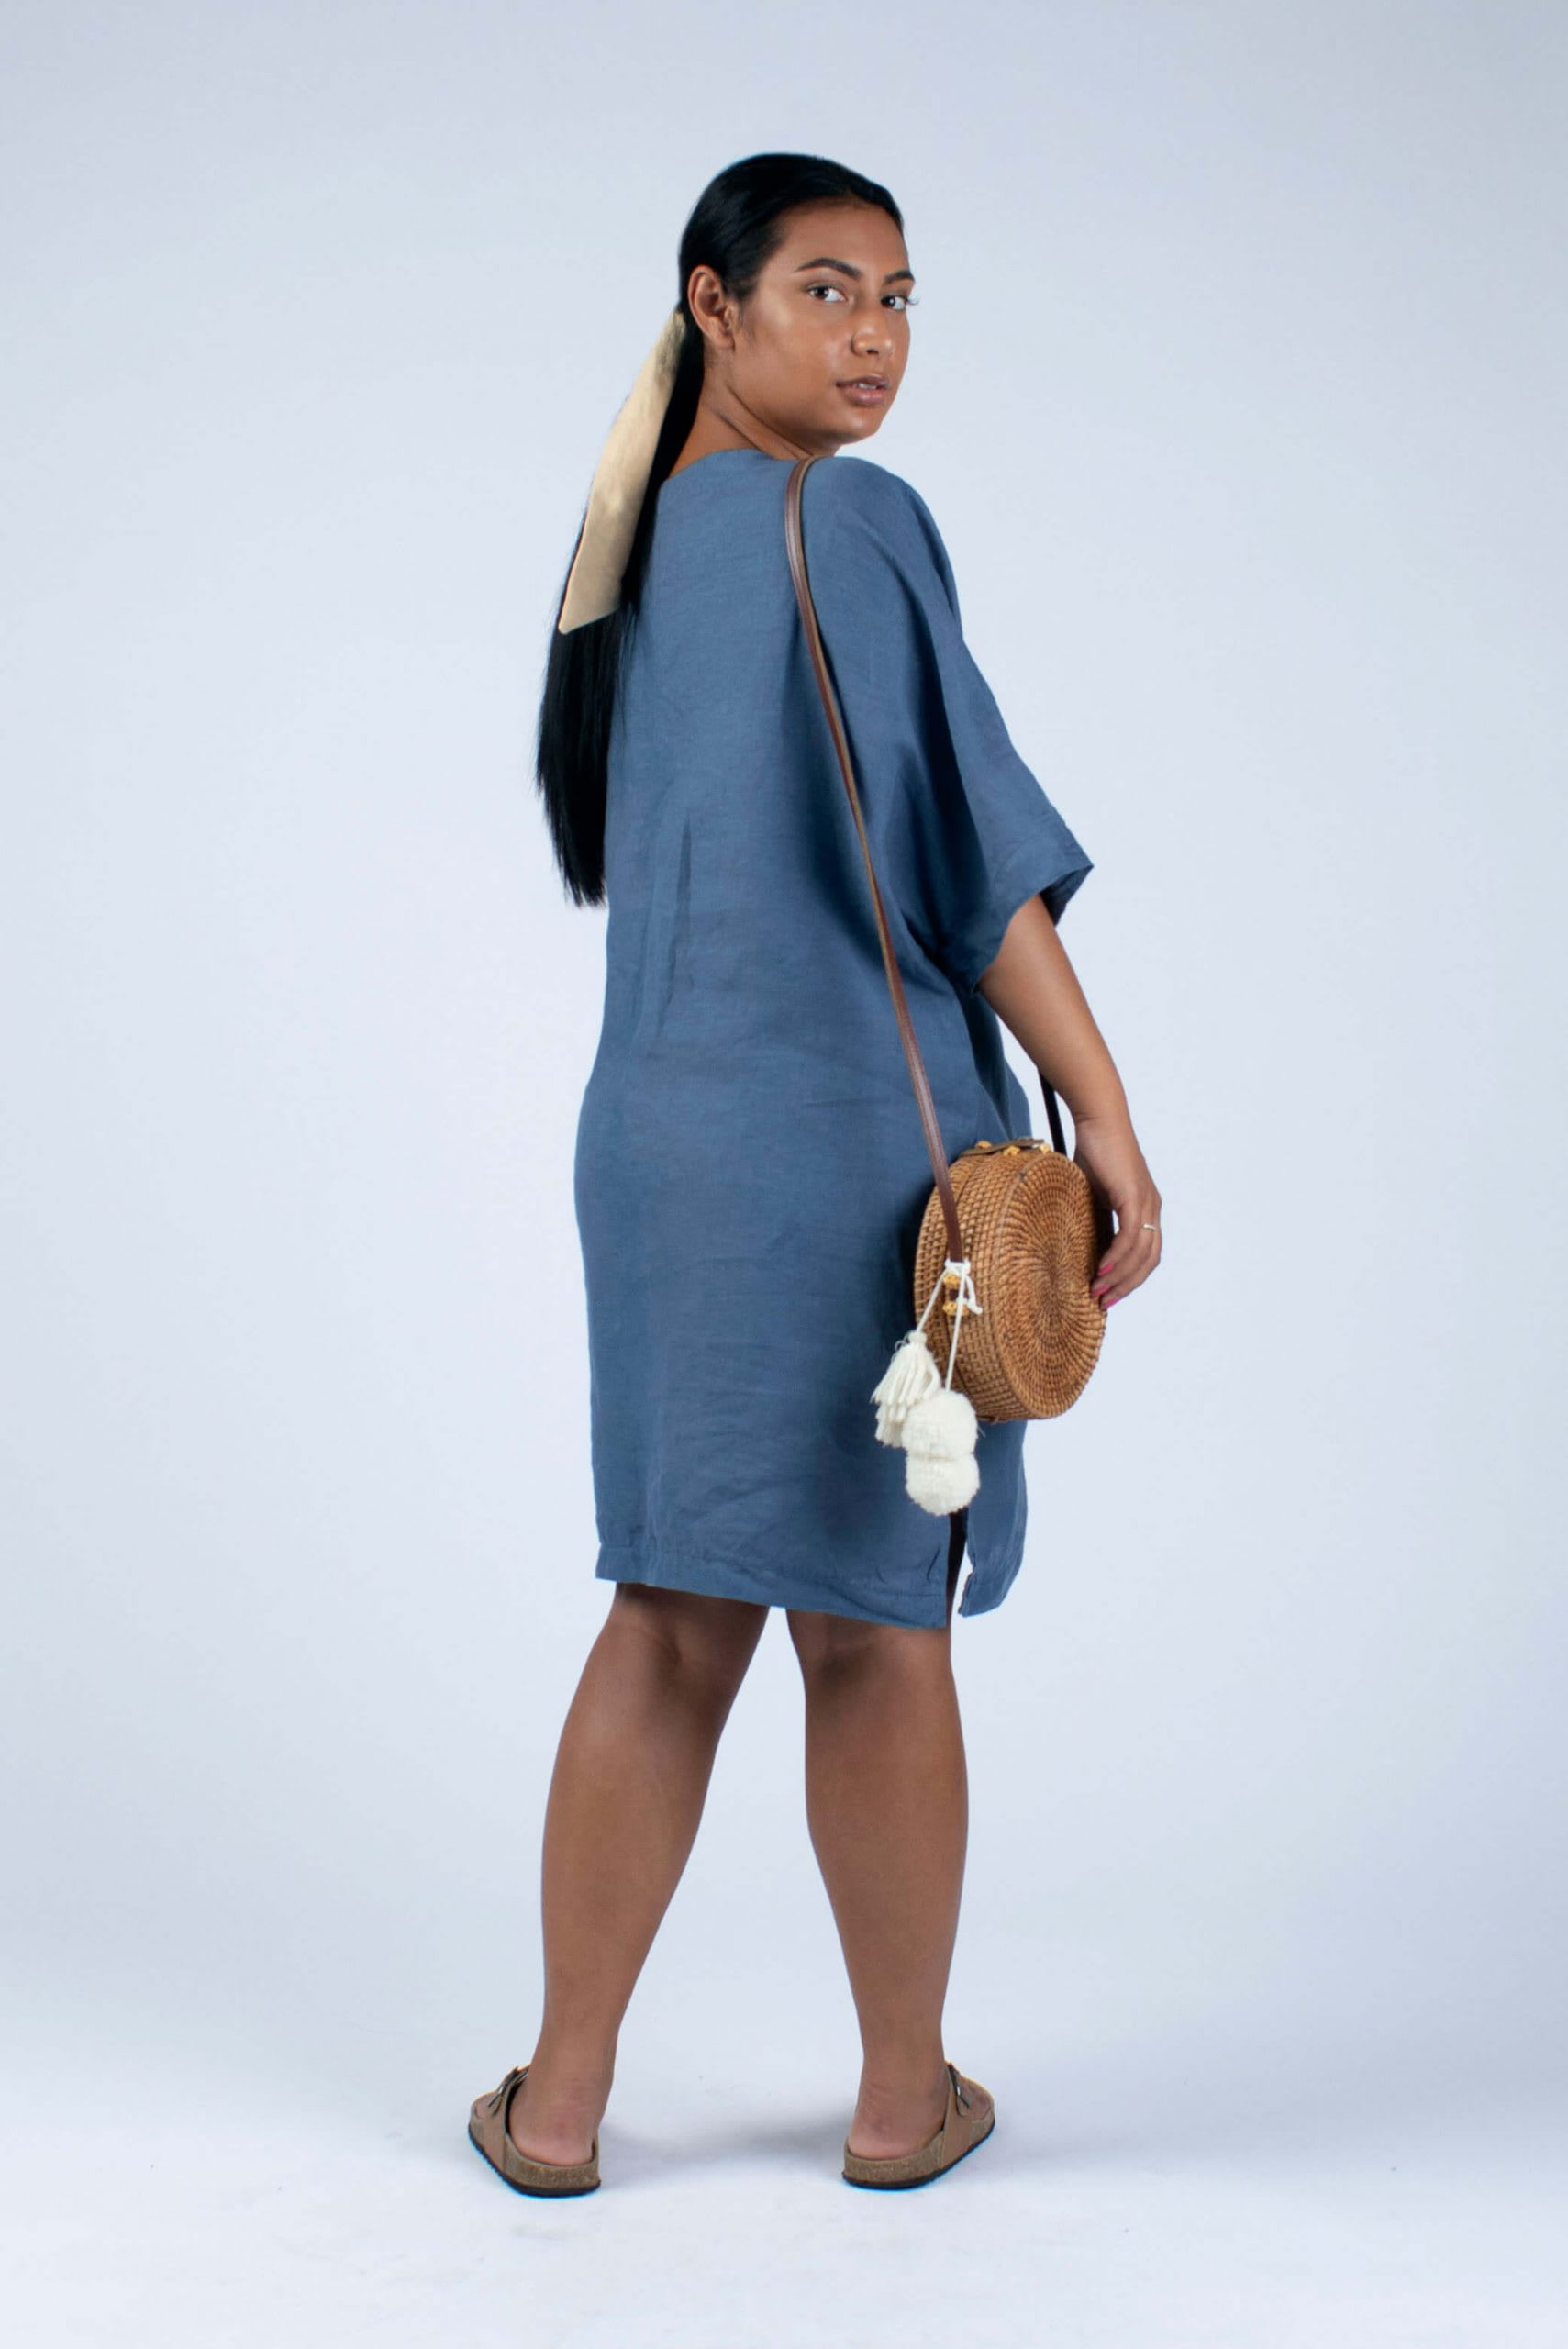 M-L tunic without collar dyed jeans blue